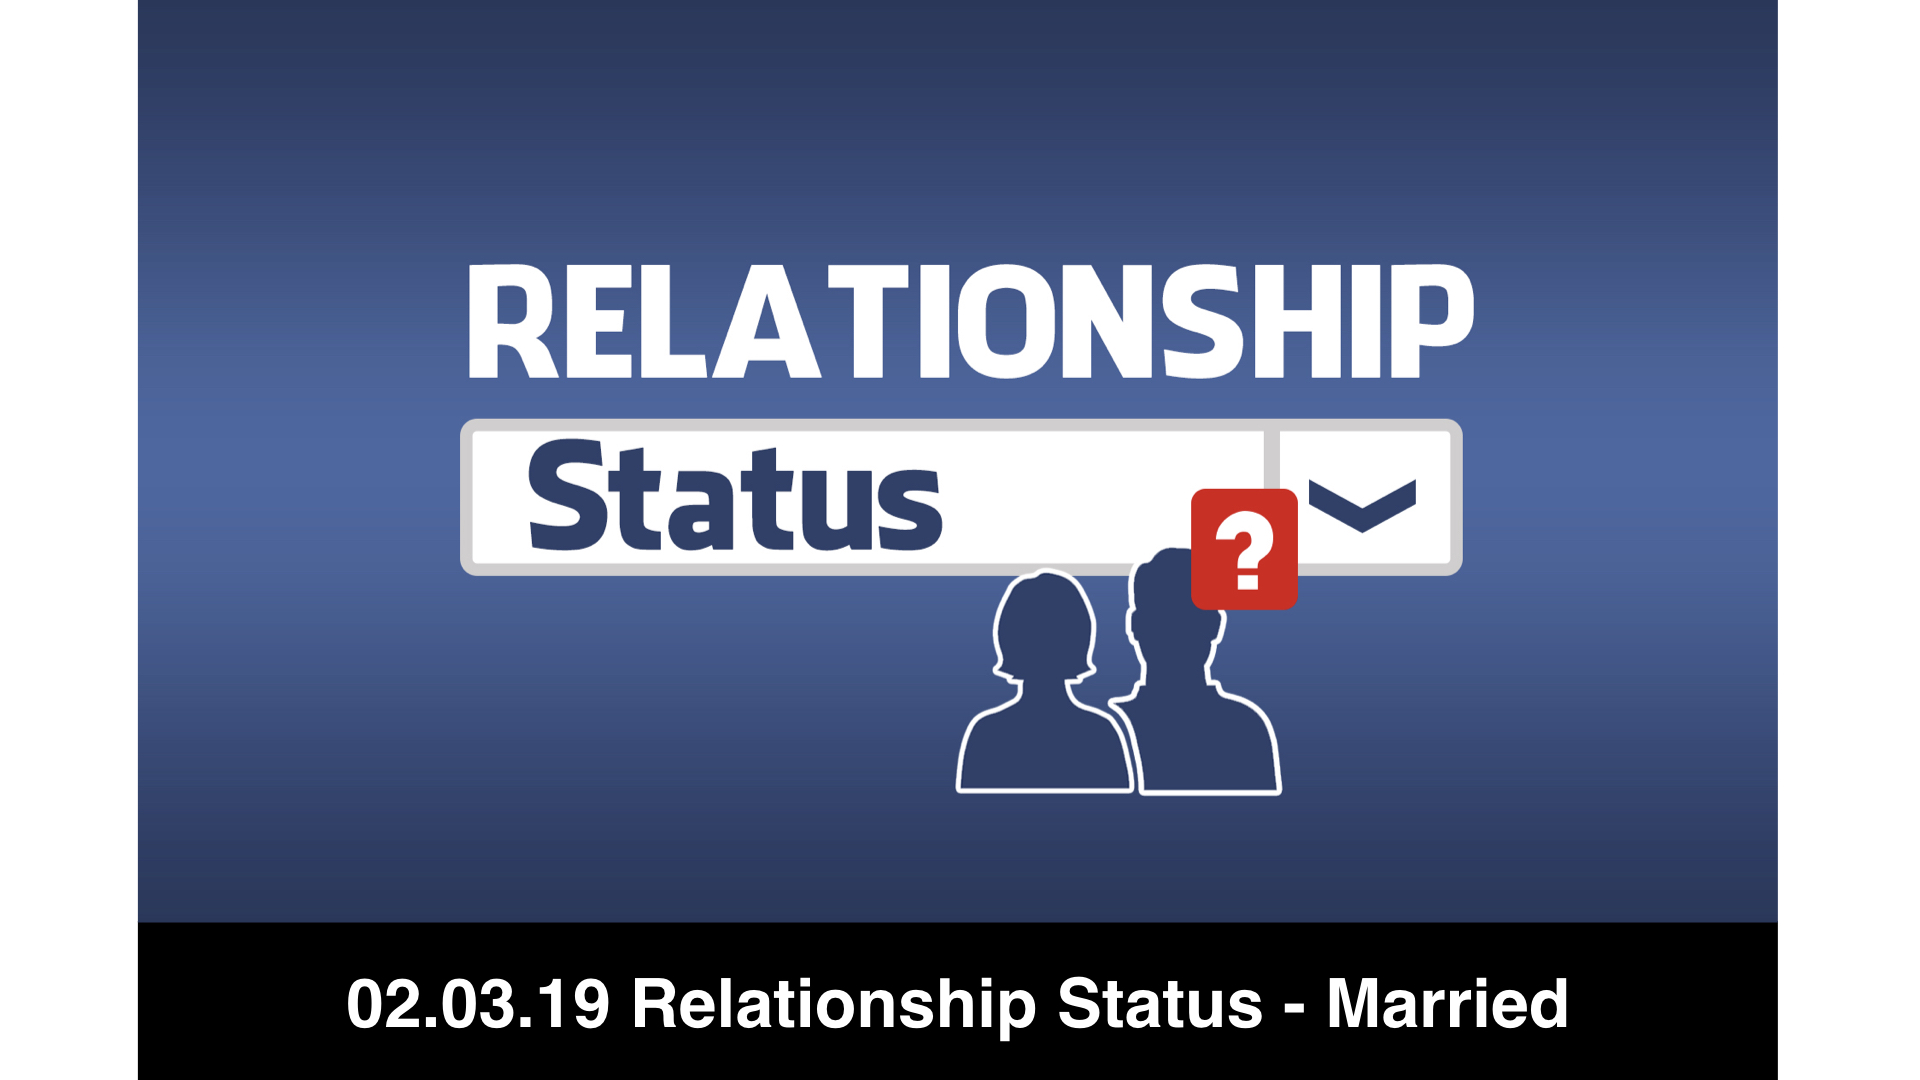 02-03-19 Relationship Status 1 - Married